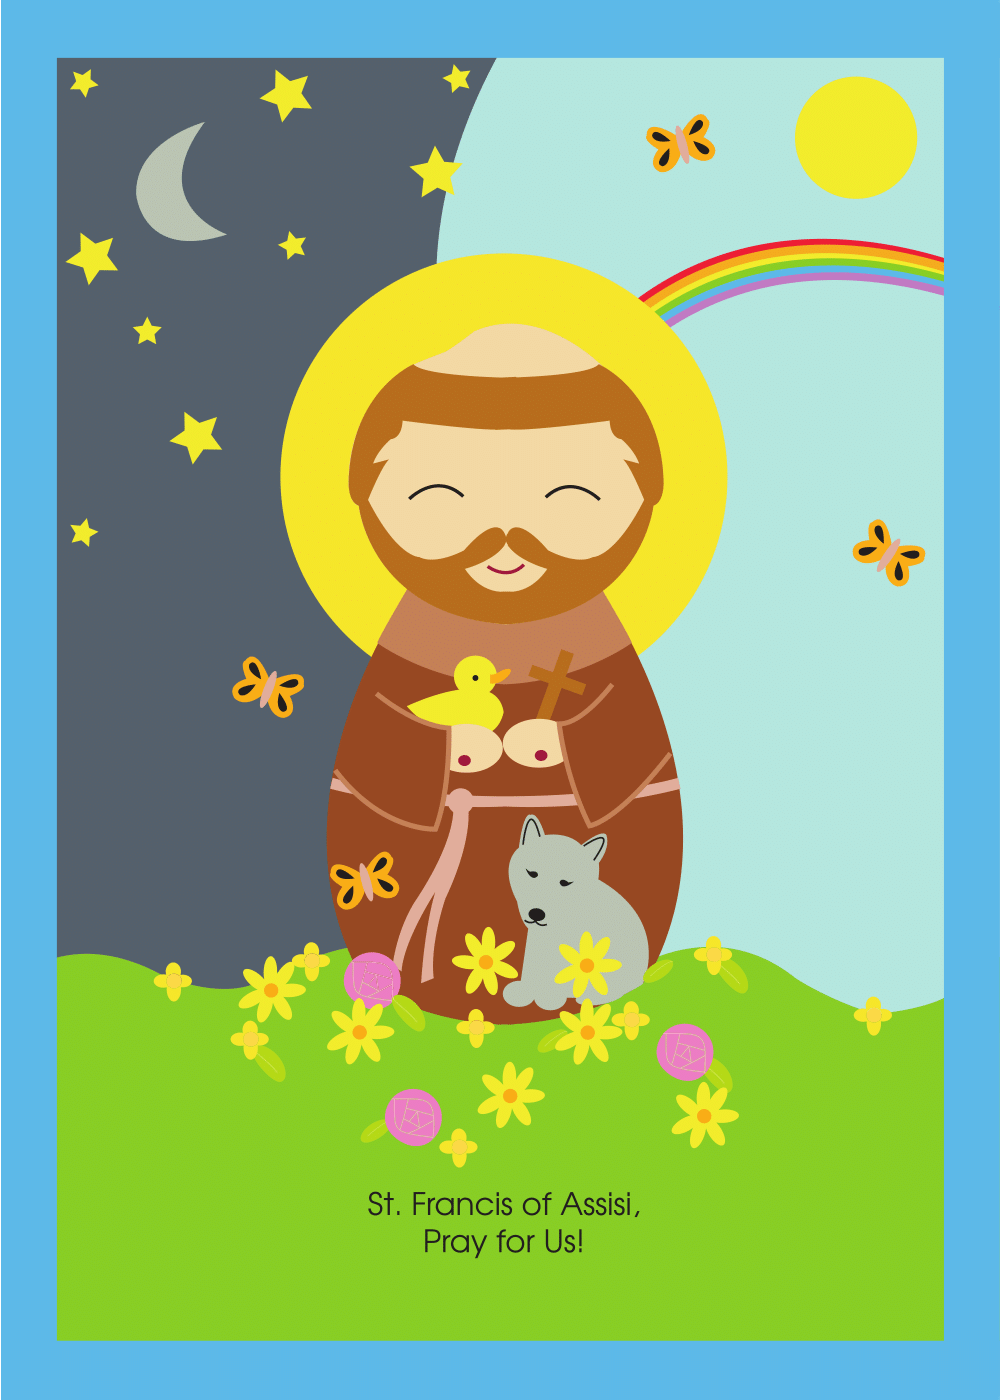 St francis of assisi clipart picture freeuse stock Saint Francis of Assisi Print picture freeuse stock